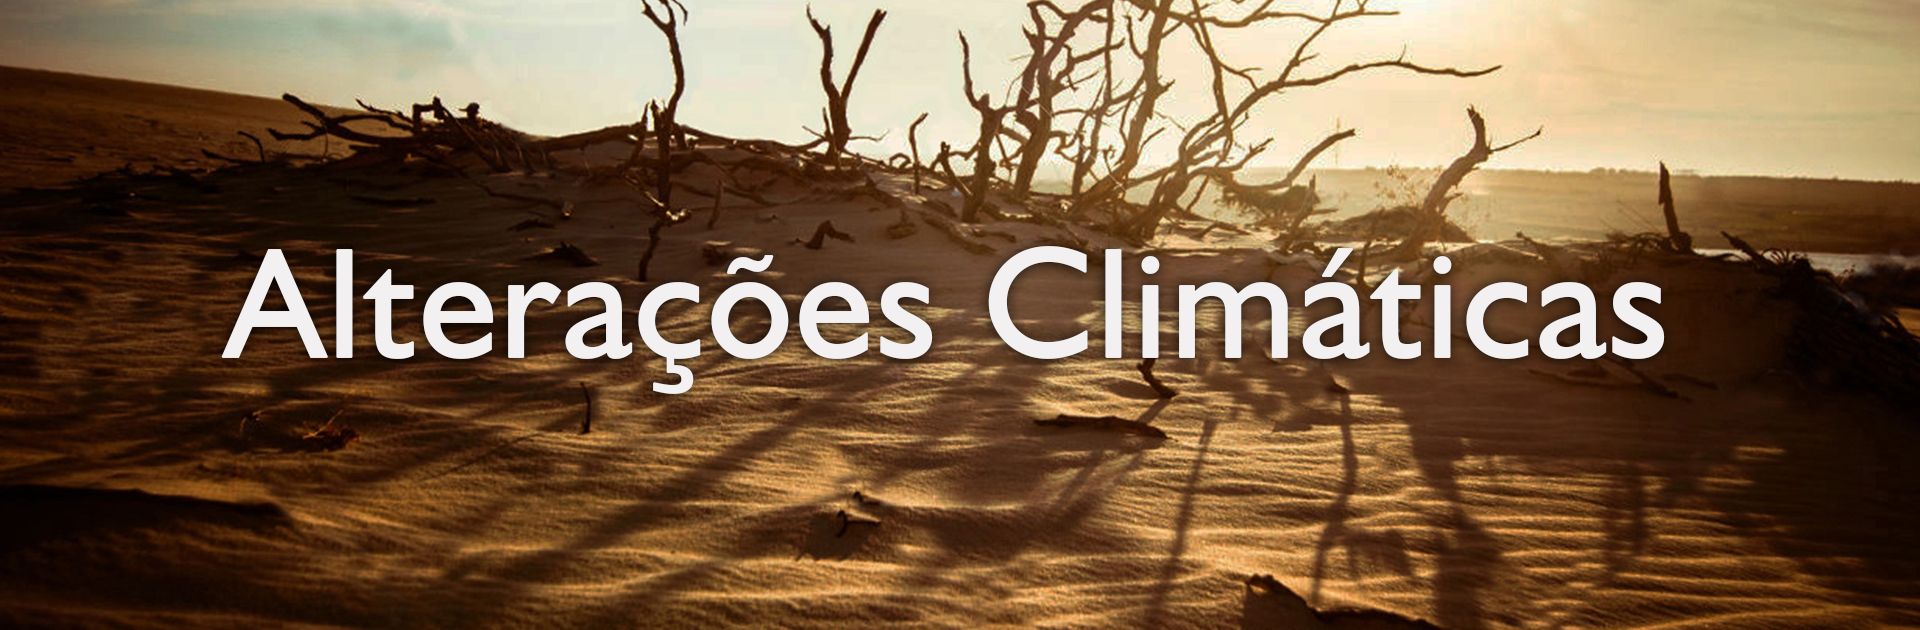 banner_alteracoes-climaticas.png